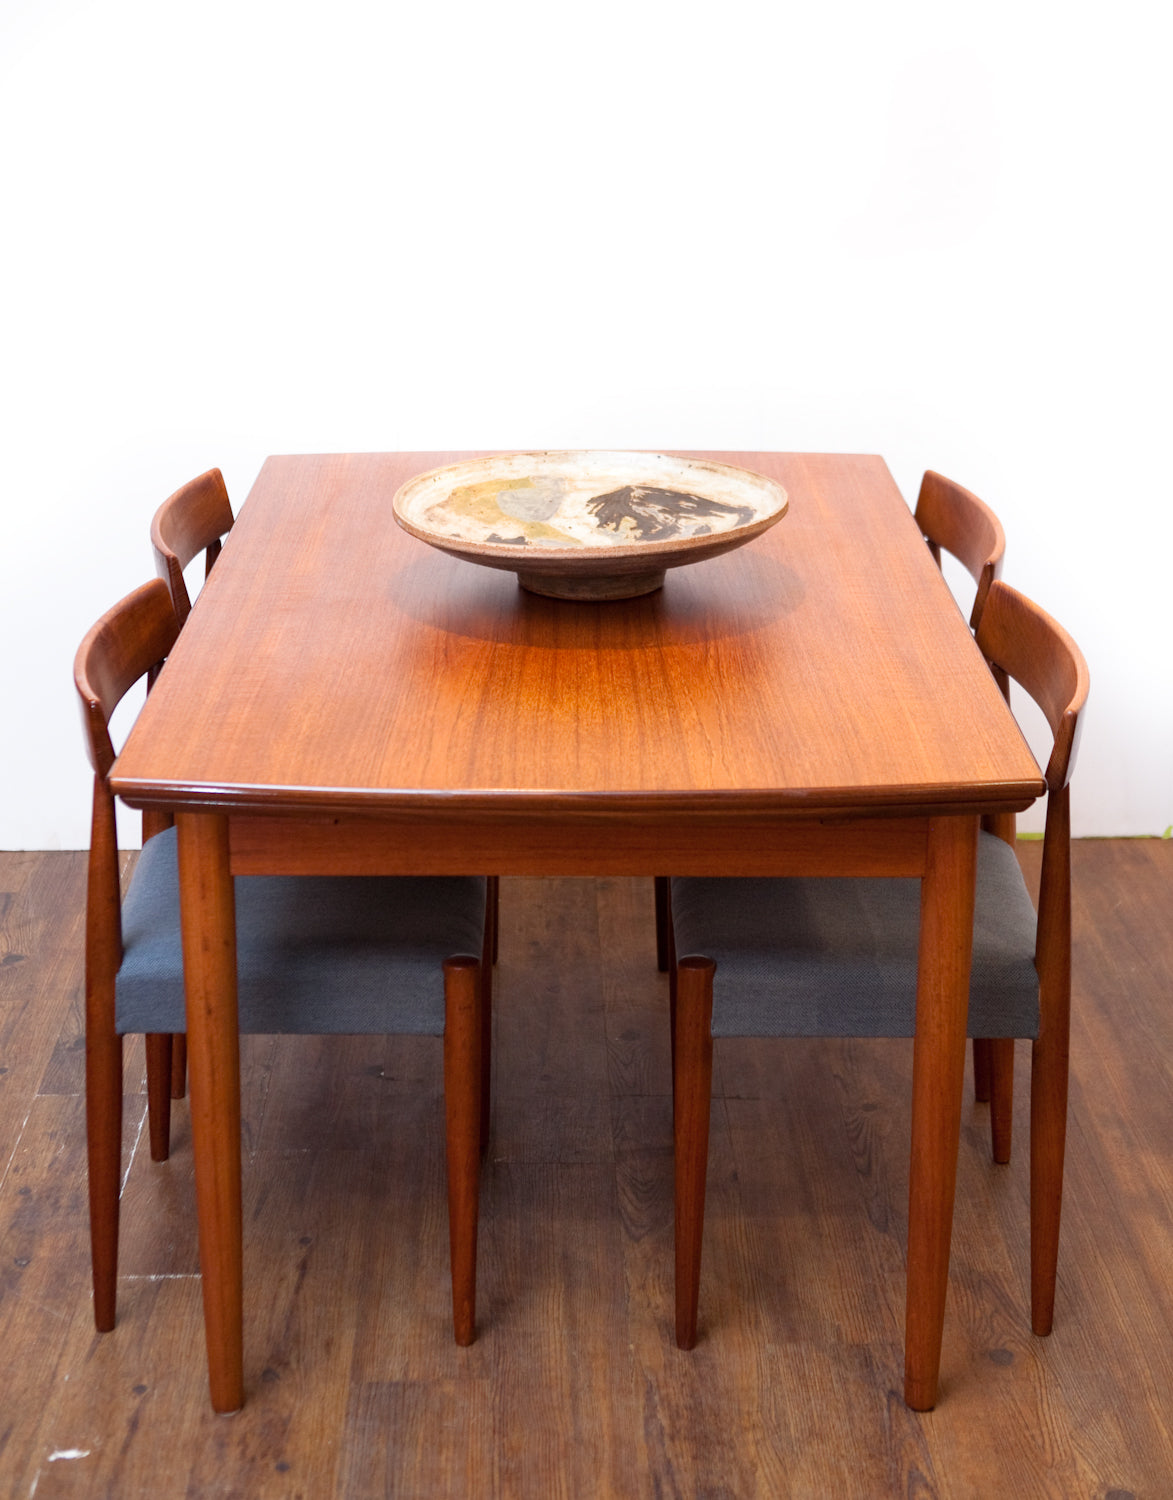 Compact Refinished Mcm Teak Dining Table W Leaves Quality Built The Fab Pad